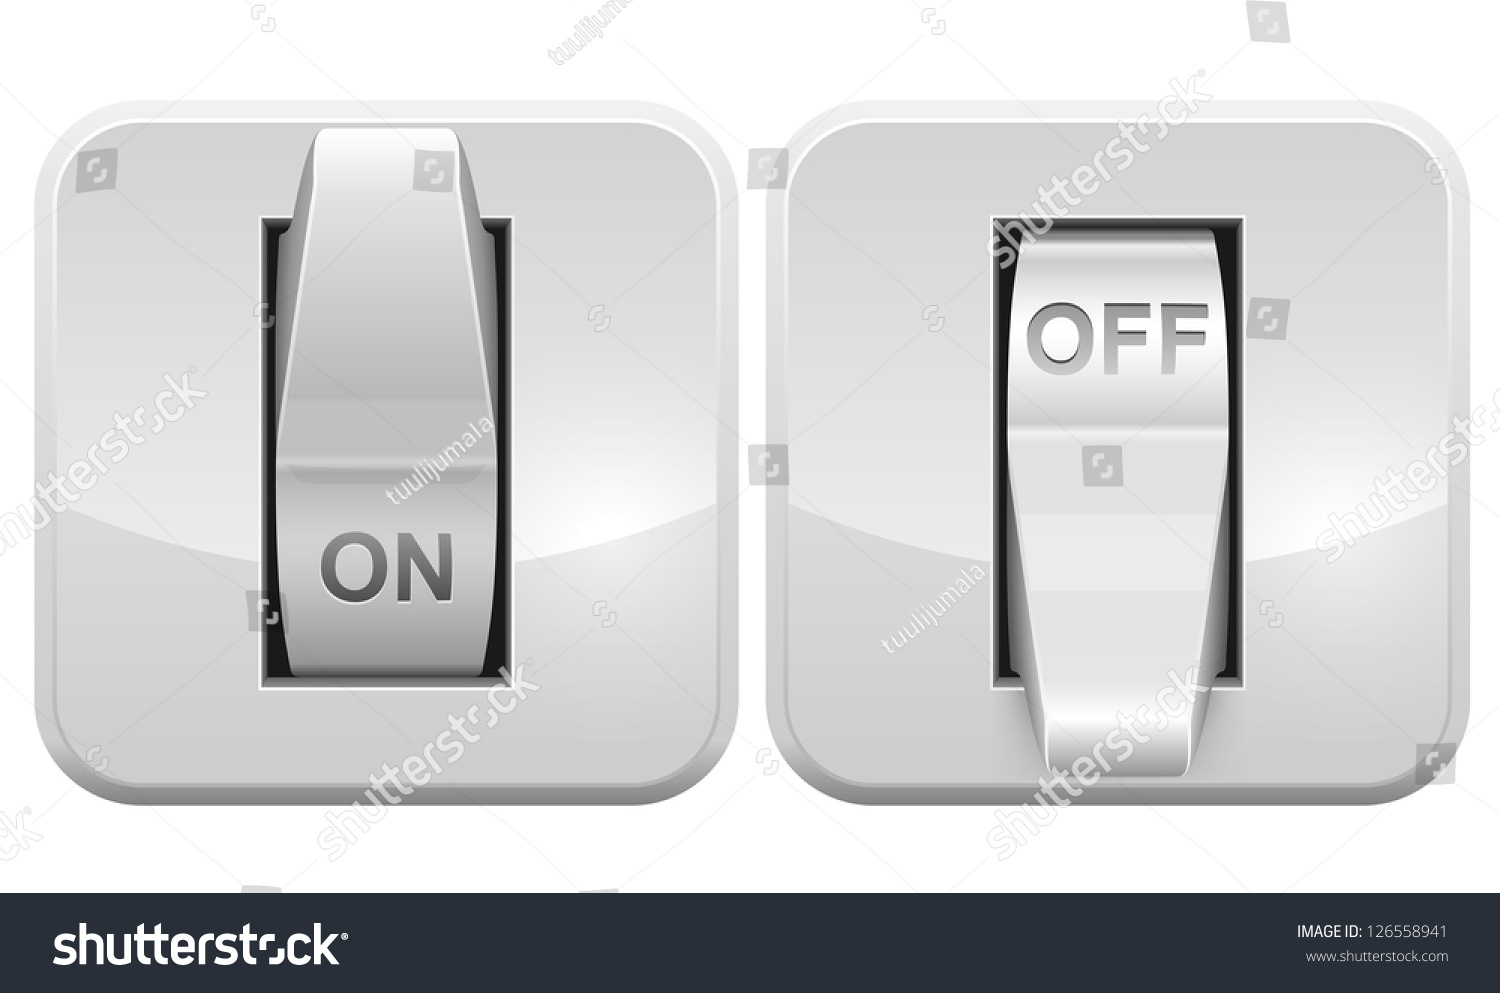 Square Circuit Icon Question About Wiring Diagram Vector Tree Stock Photo Image 34279490 Electric Switch Web Isolated Network